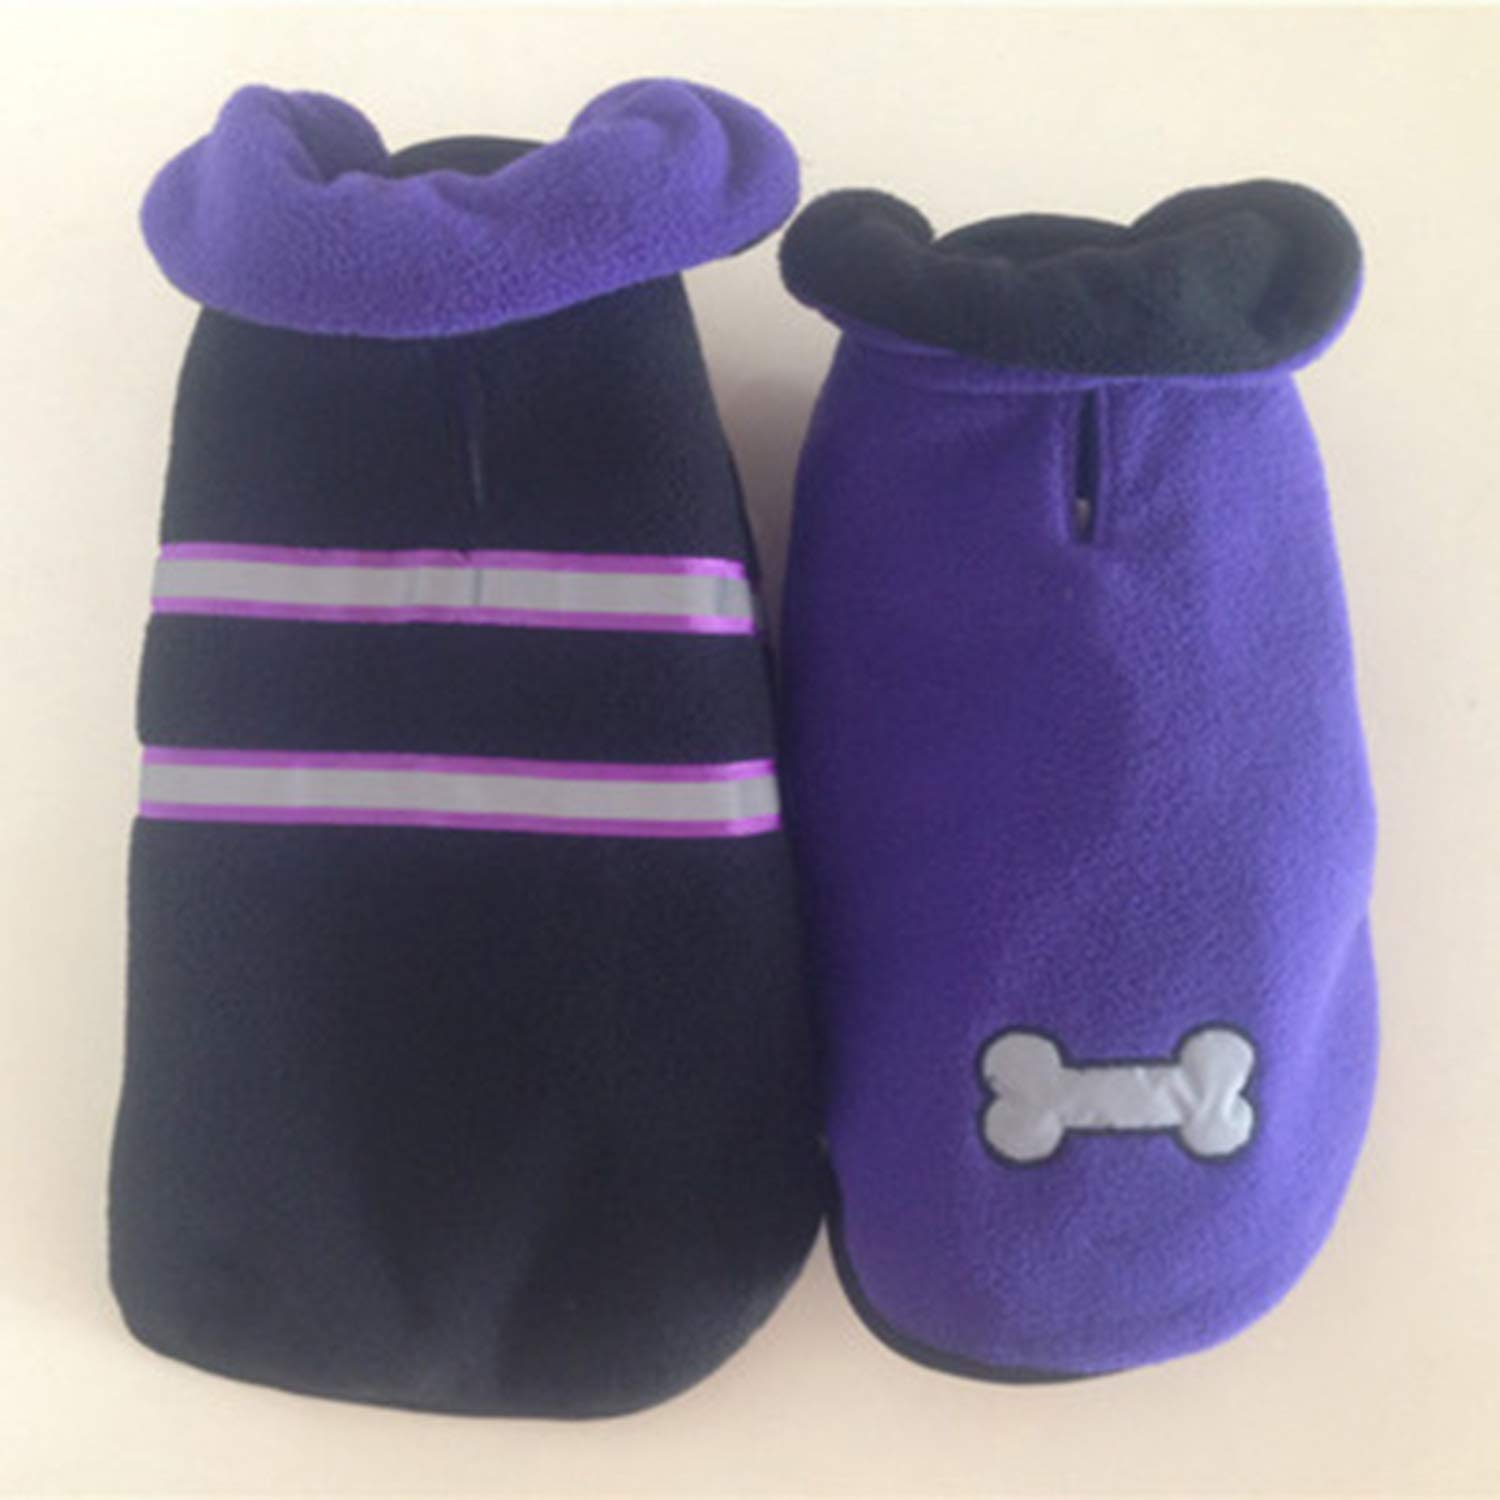 Purple XXL Purple XXL Clothes for Pets Dog Clothes Poodle, Beagle, Teddy, Clothes Warm Cotton Cloak